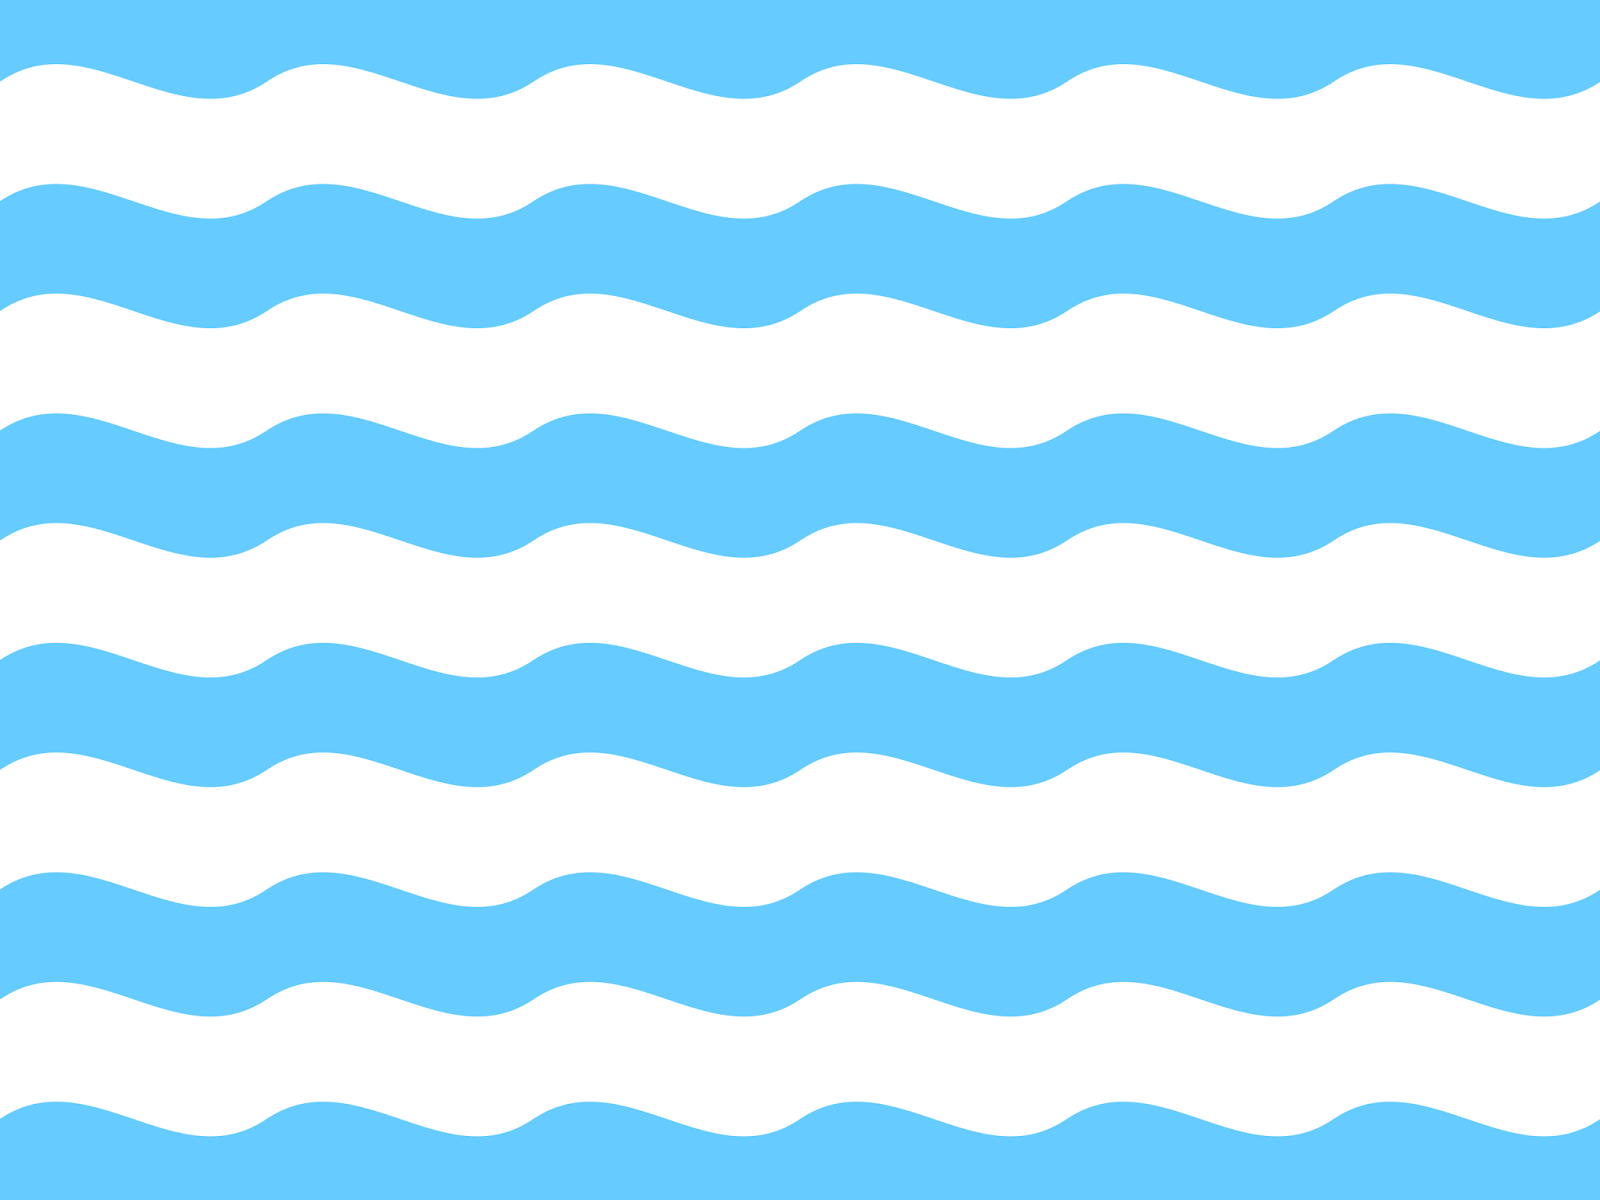 Water clipart wave. Waves at getdrawings com